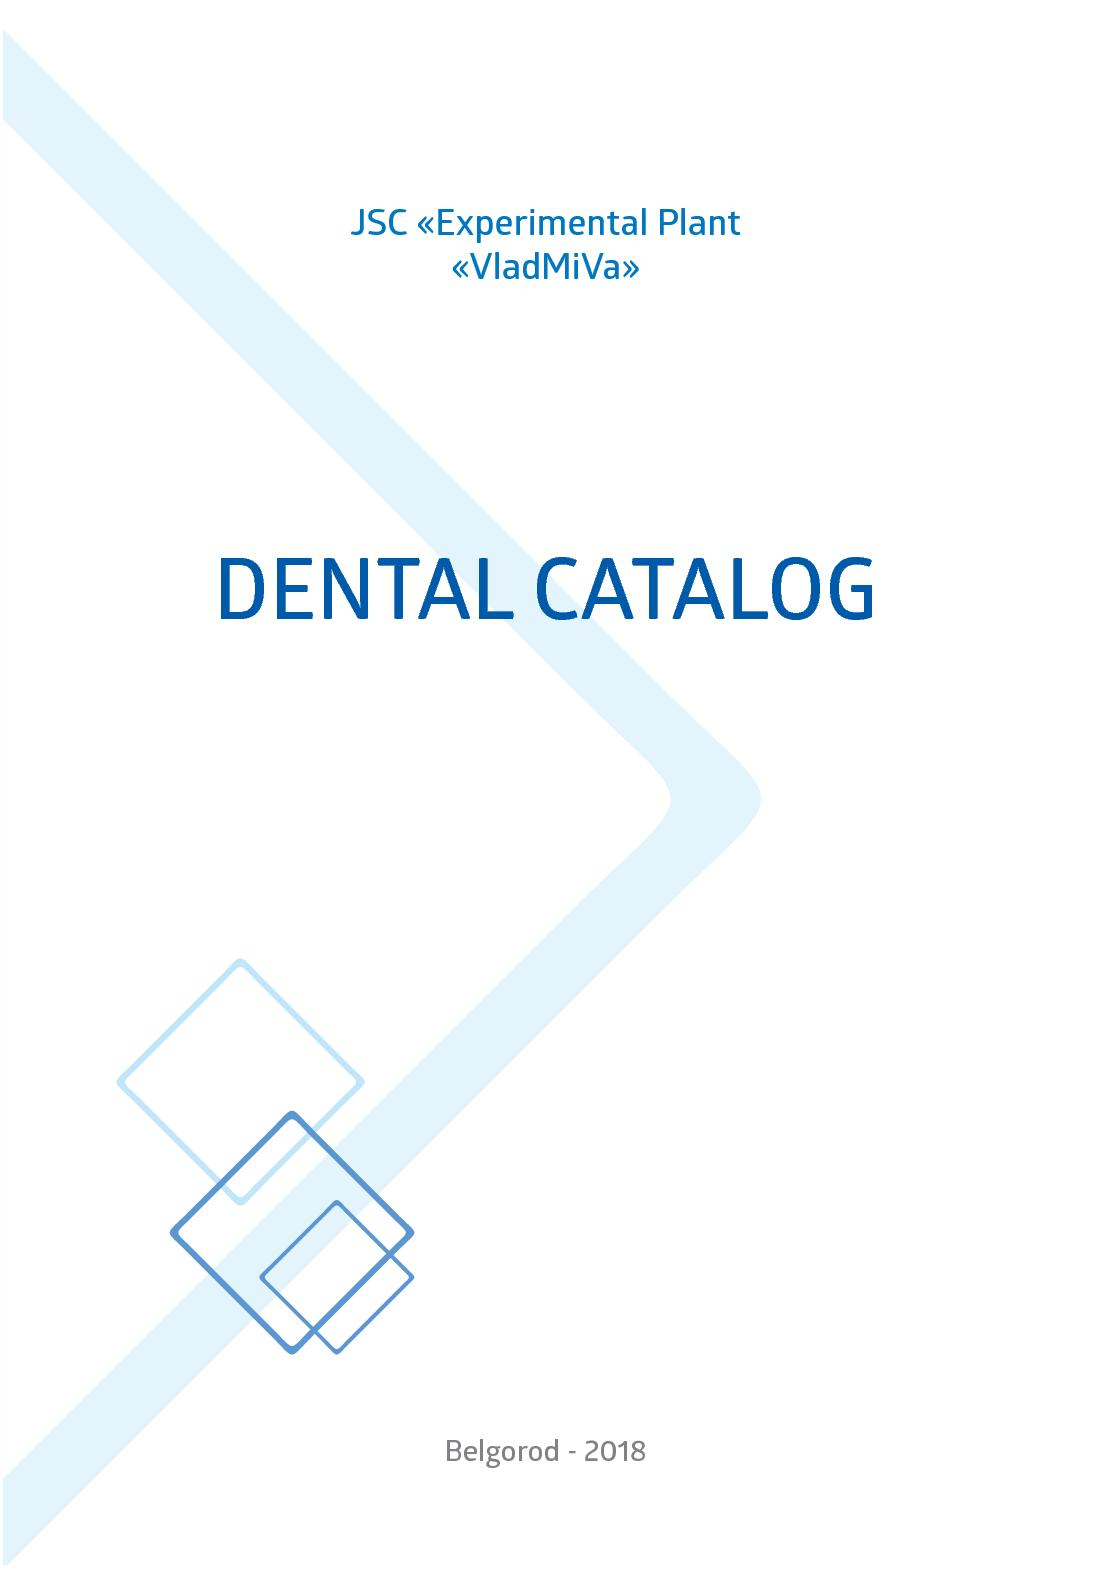 Calamo Dental Catalog En 2018 Fiber To The Home Nordins Bits N Pieces